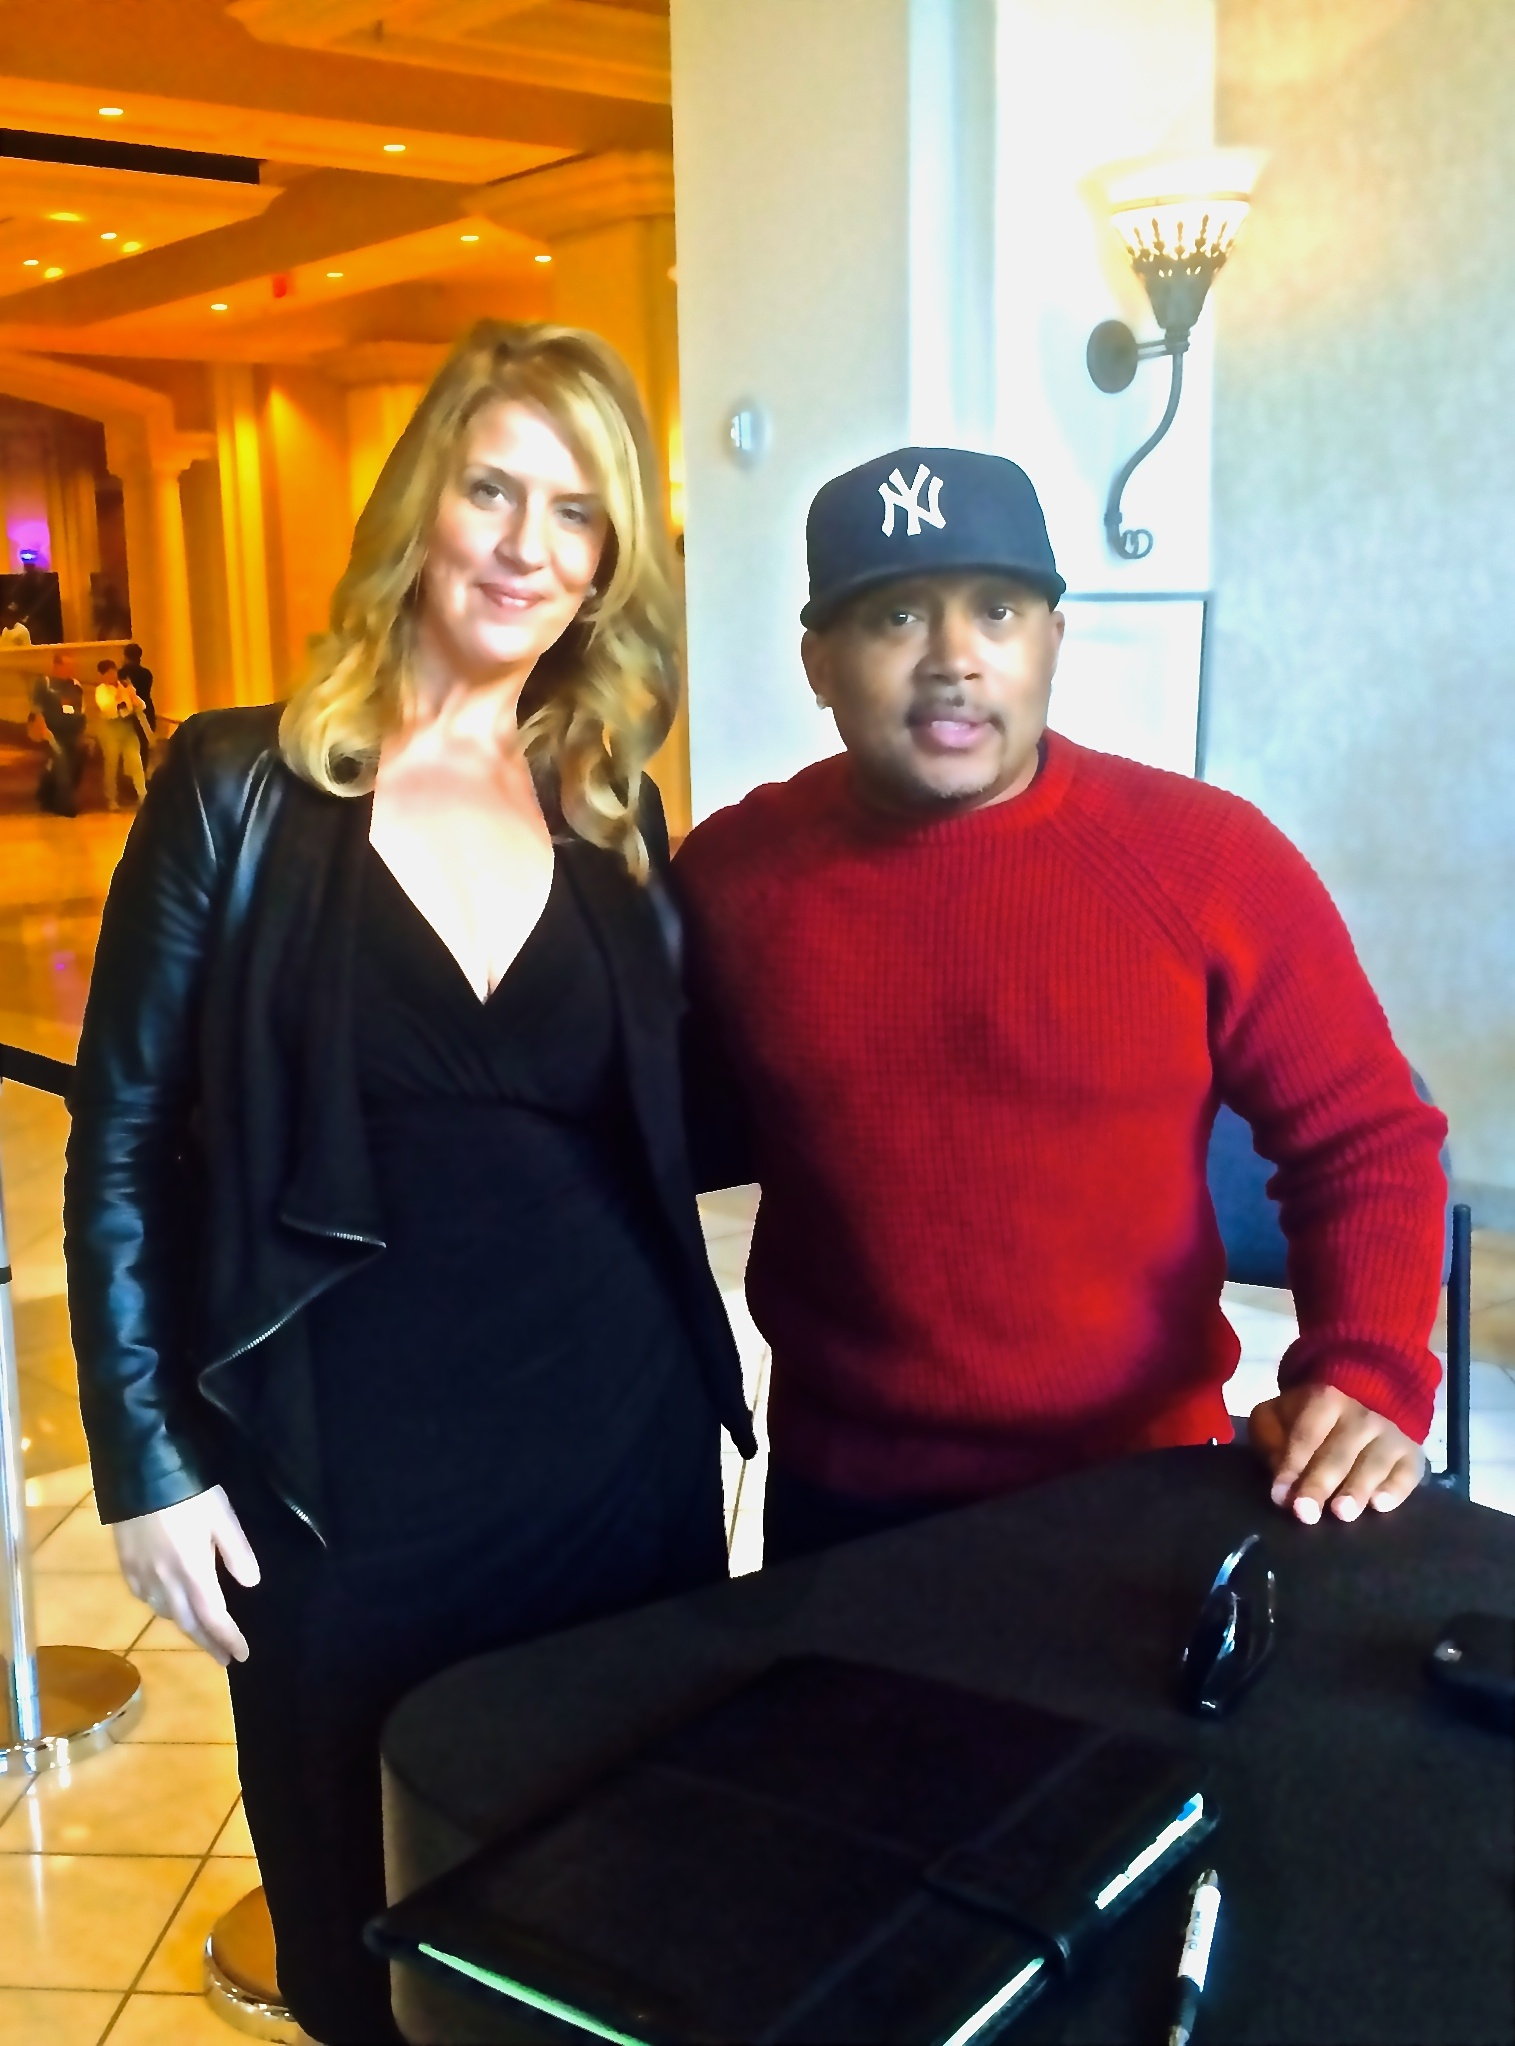 Elev8 Founder Angela Delmedico Meets With Daymond John & Shark Branding